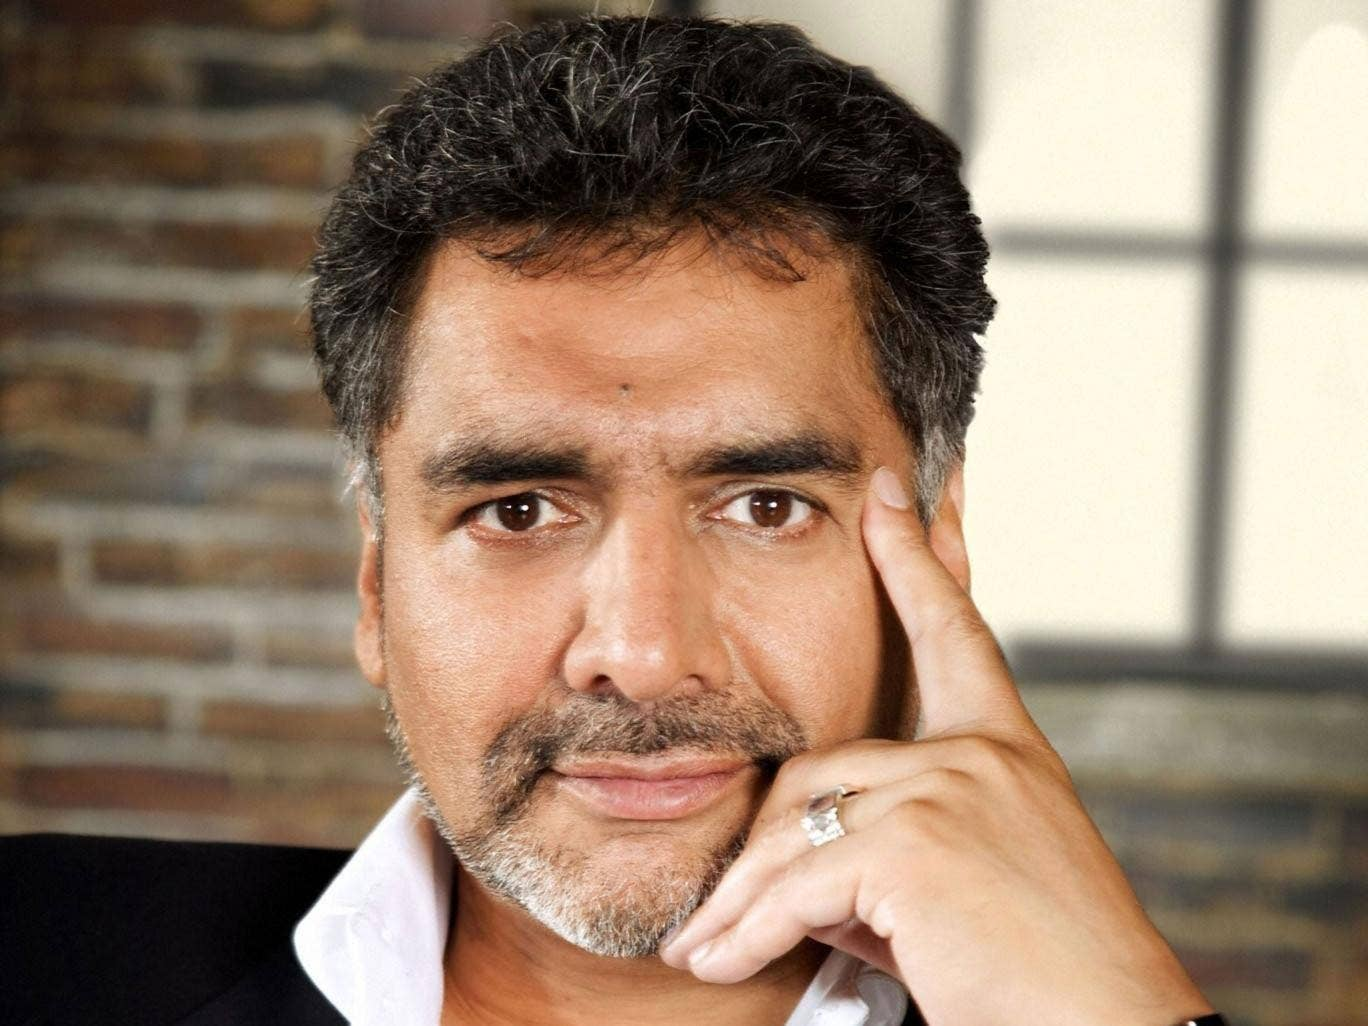 James Caan: Born in Pakistan in 1960, the son of Bangladeshi parents, he came to the UK when he was aged two. His father had little money and no job but started a clothing company. The young Caan started his own recruitment company and later founded the v